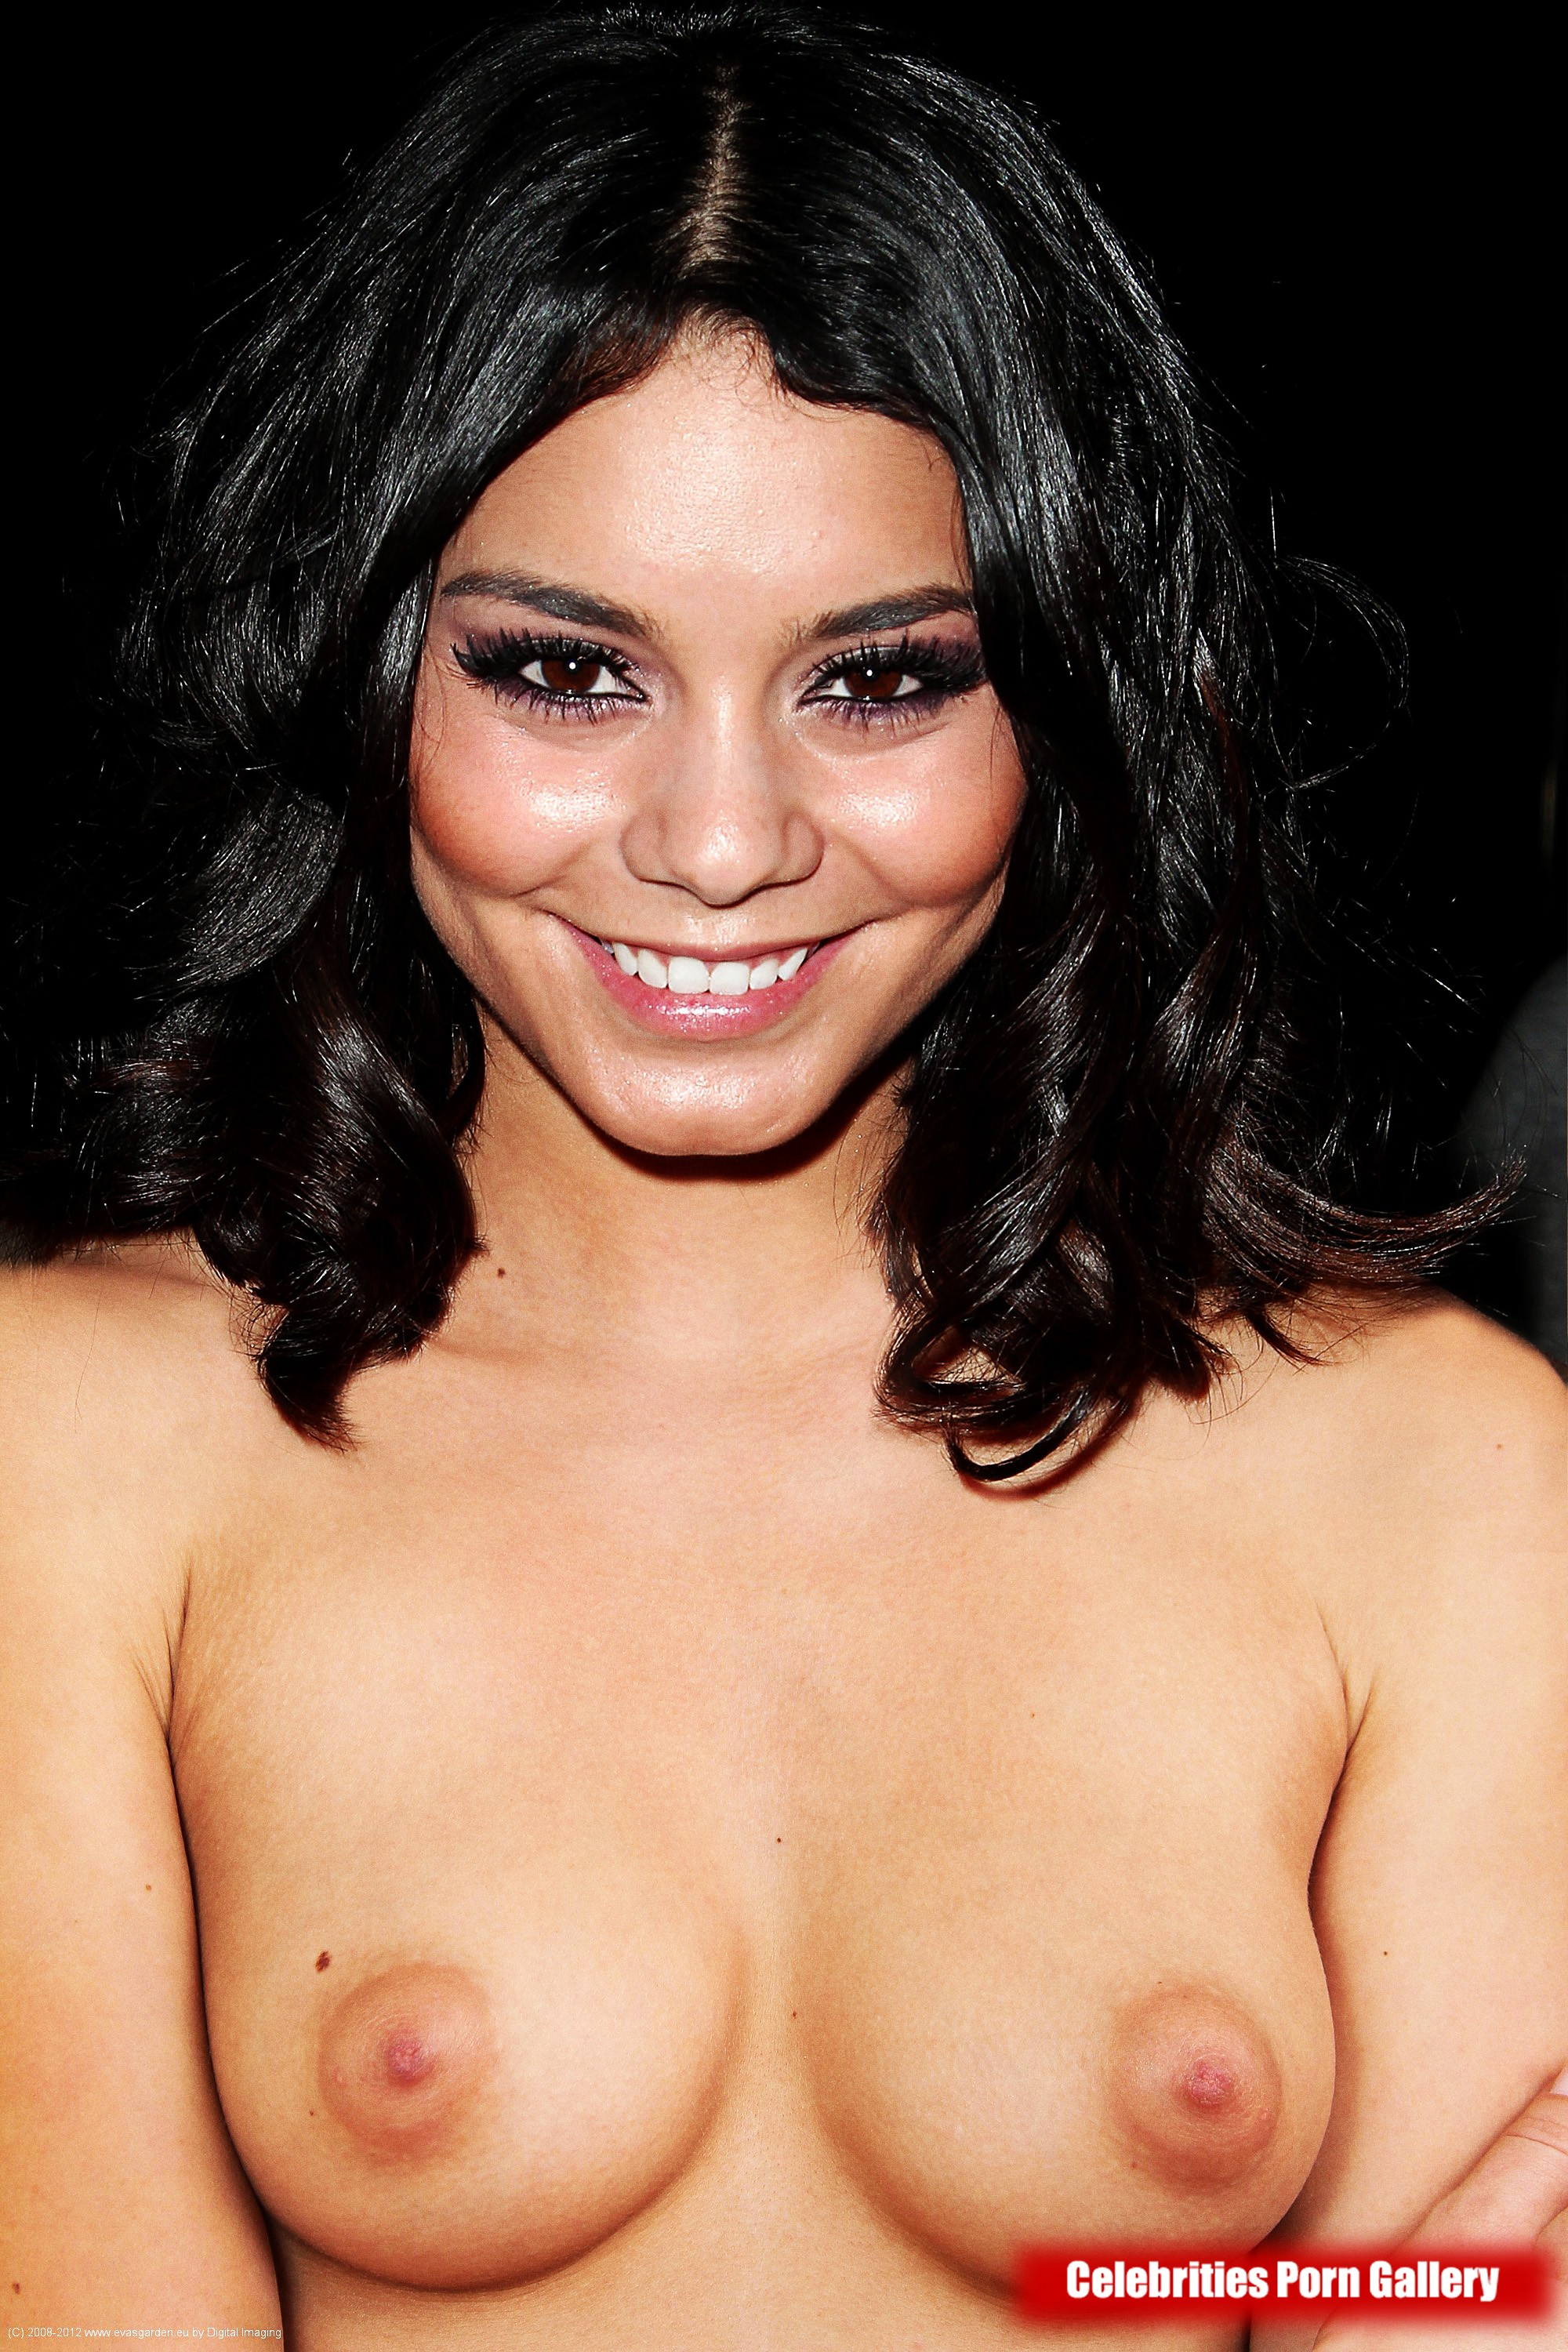 See vanessa hudgens response to ashley tisdale's hsm photo